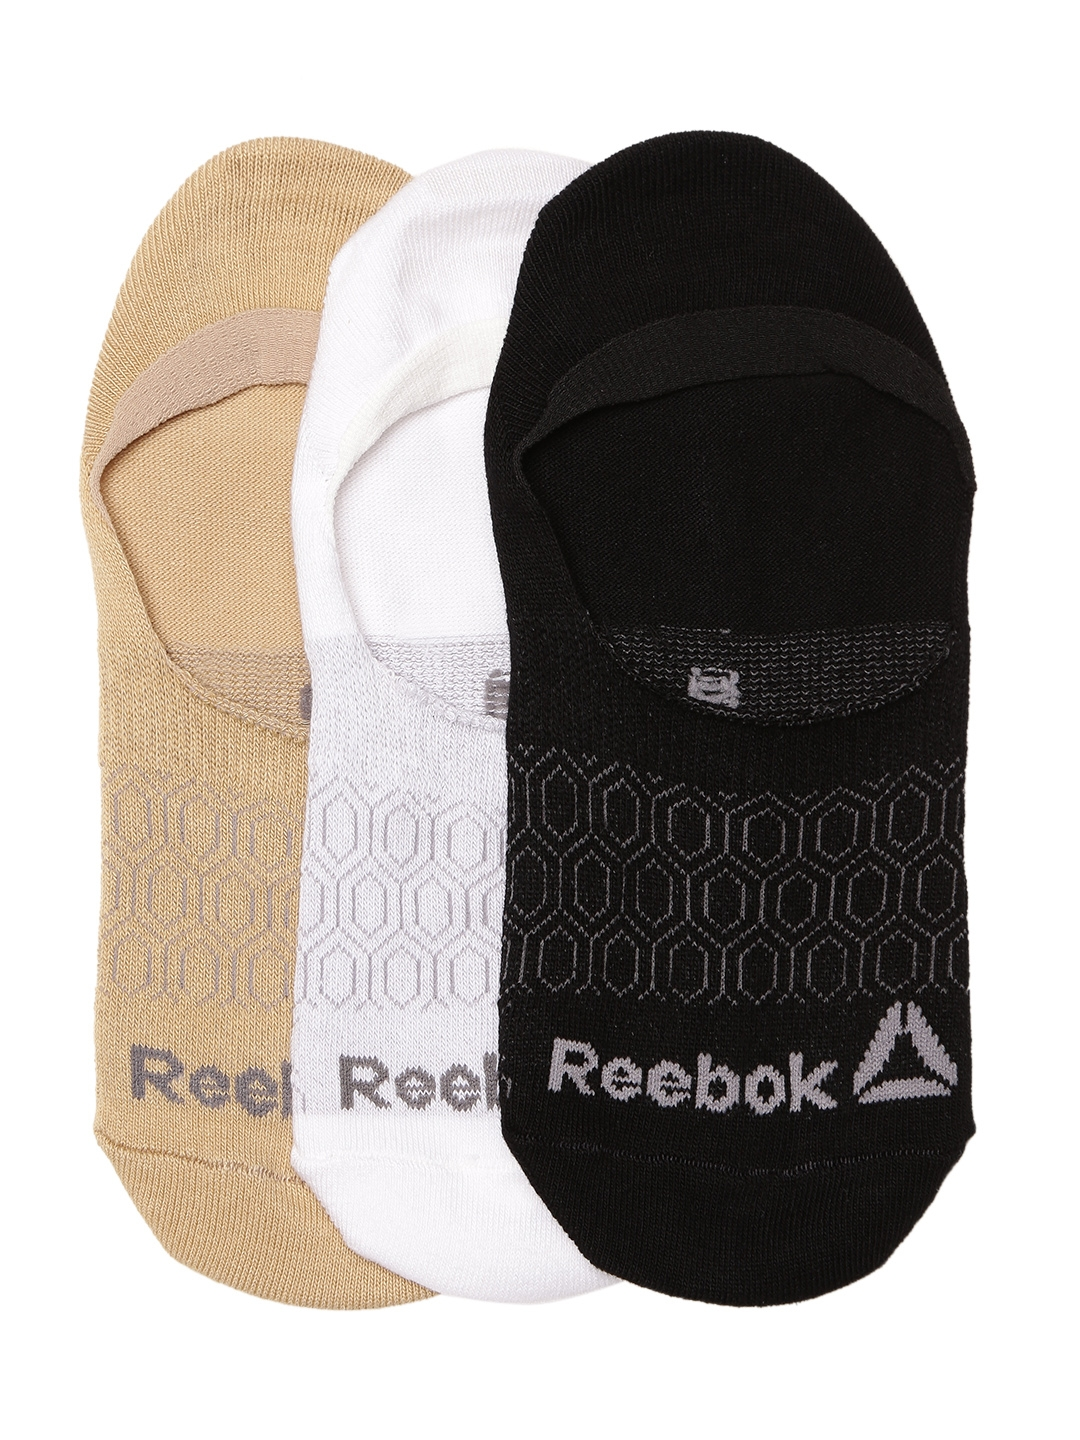 Buy Reebok Women NO SHOW Set Of 3 Shoeliners - Socks for Women ... 0d2f0b95b